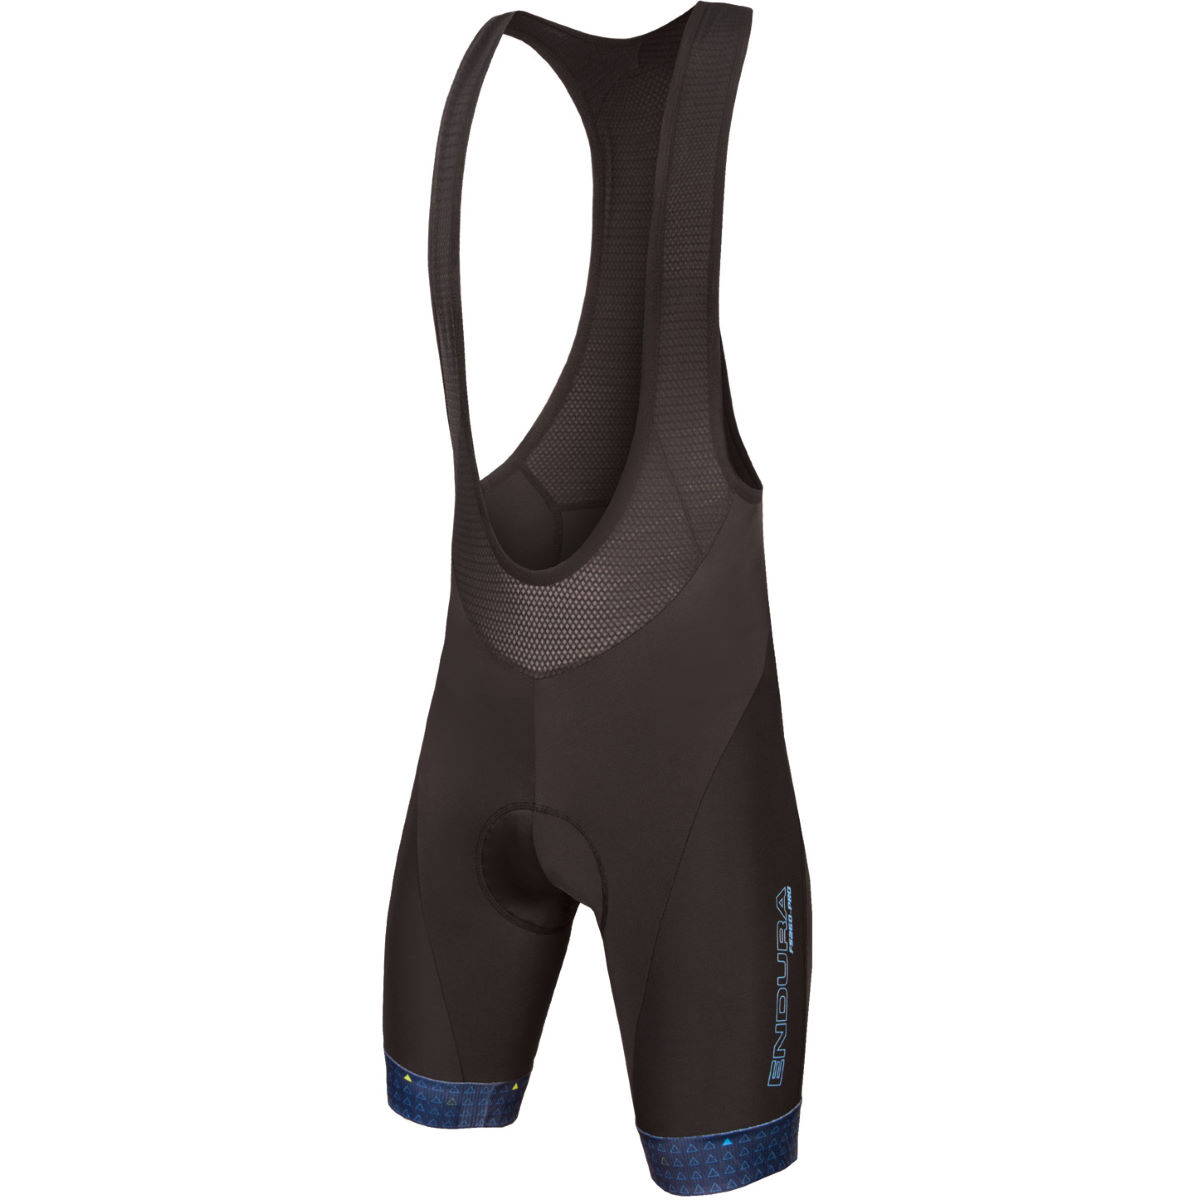 Endura Graphics Bib Shorts - XL Trianglulate | Lycra Cycling Shorts